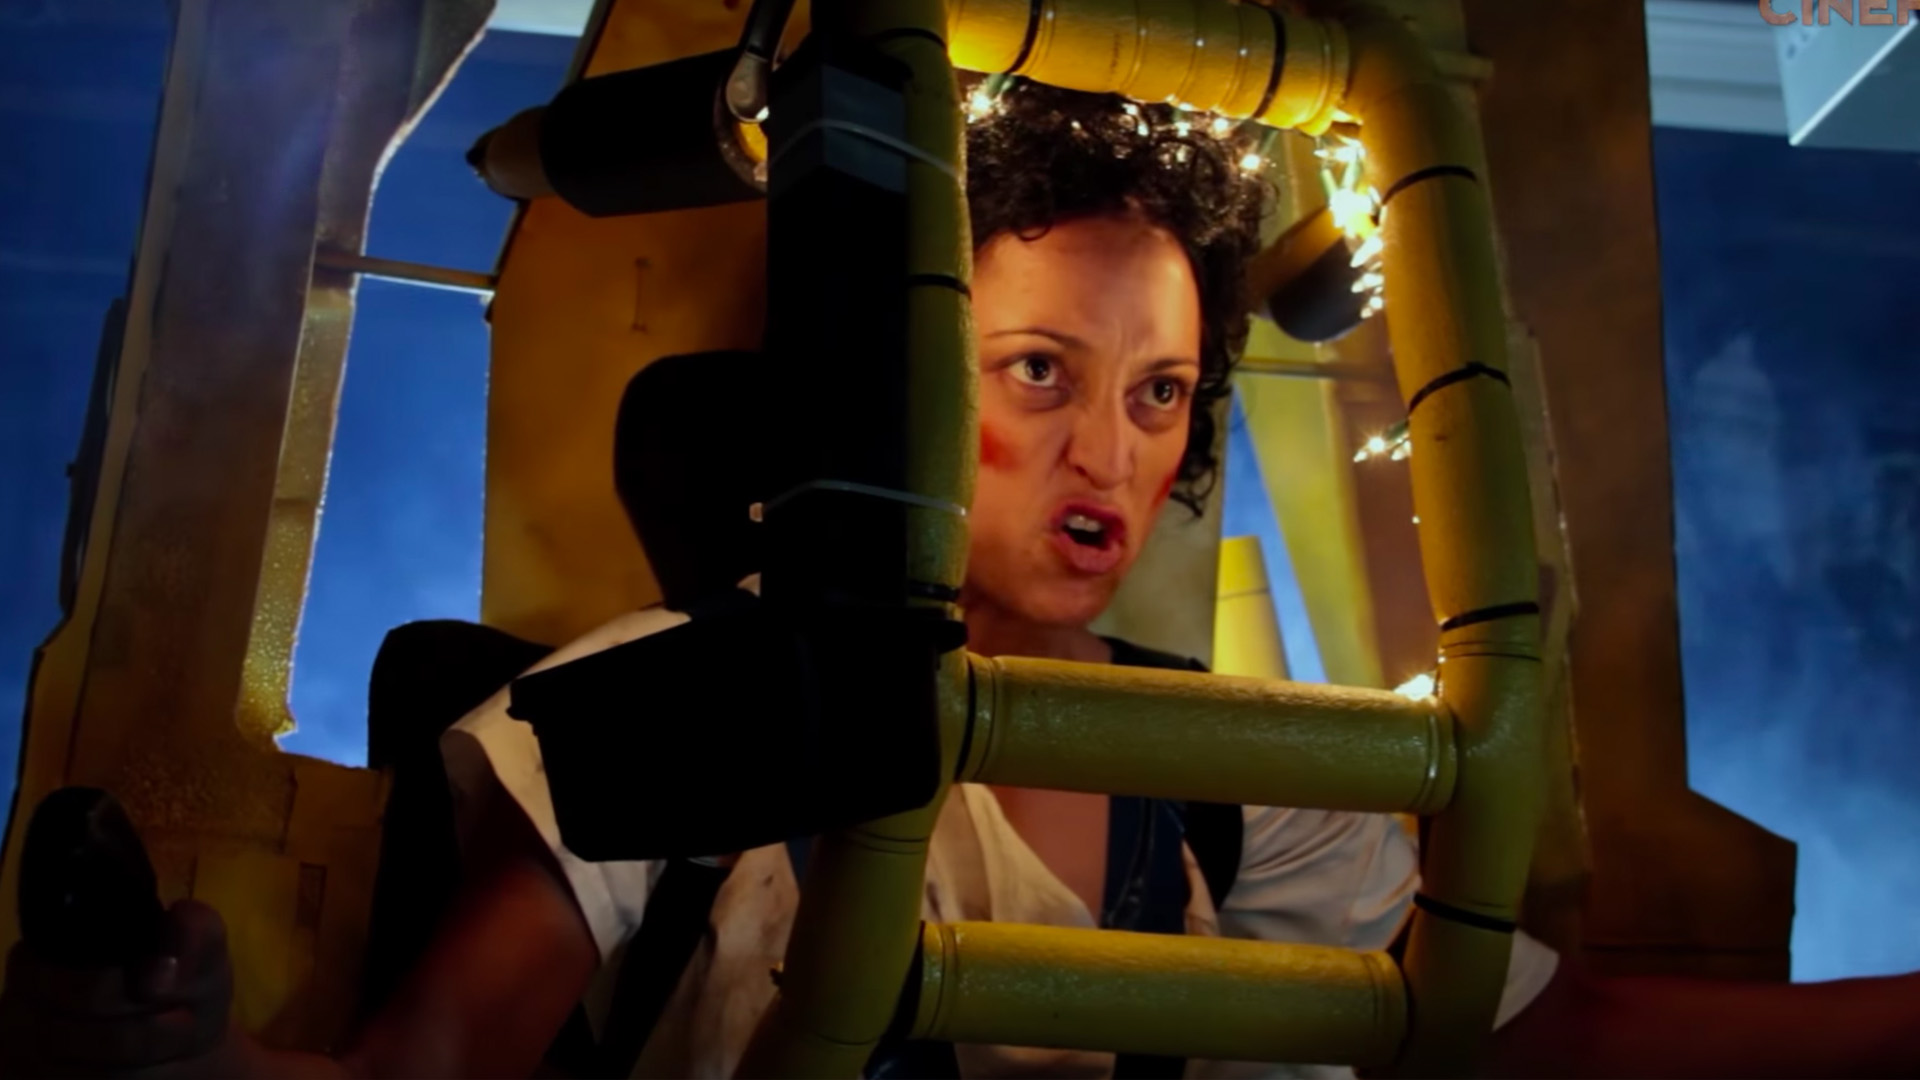 Watch ALIENSu0027 Power Loader Scene Recreated Using Cardboard  sc 1 st  GeekTyrant & Clever Daddy/Daughter Baby Ripley Power Loader Costume u2014 GeekTyrant